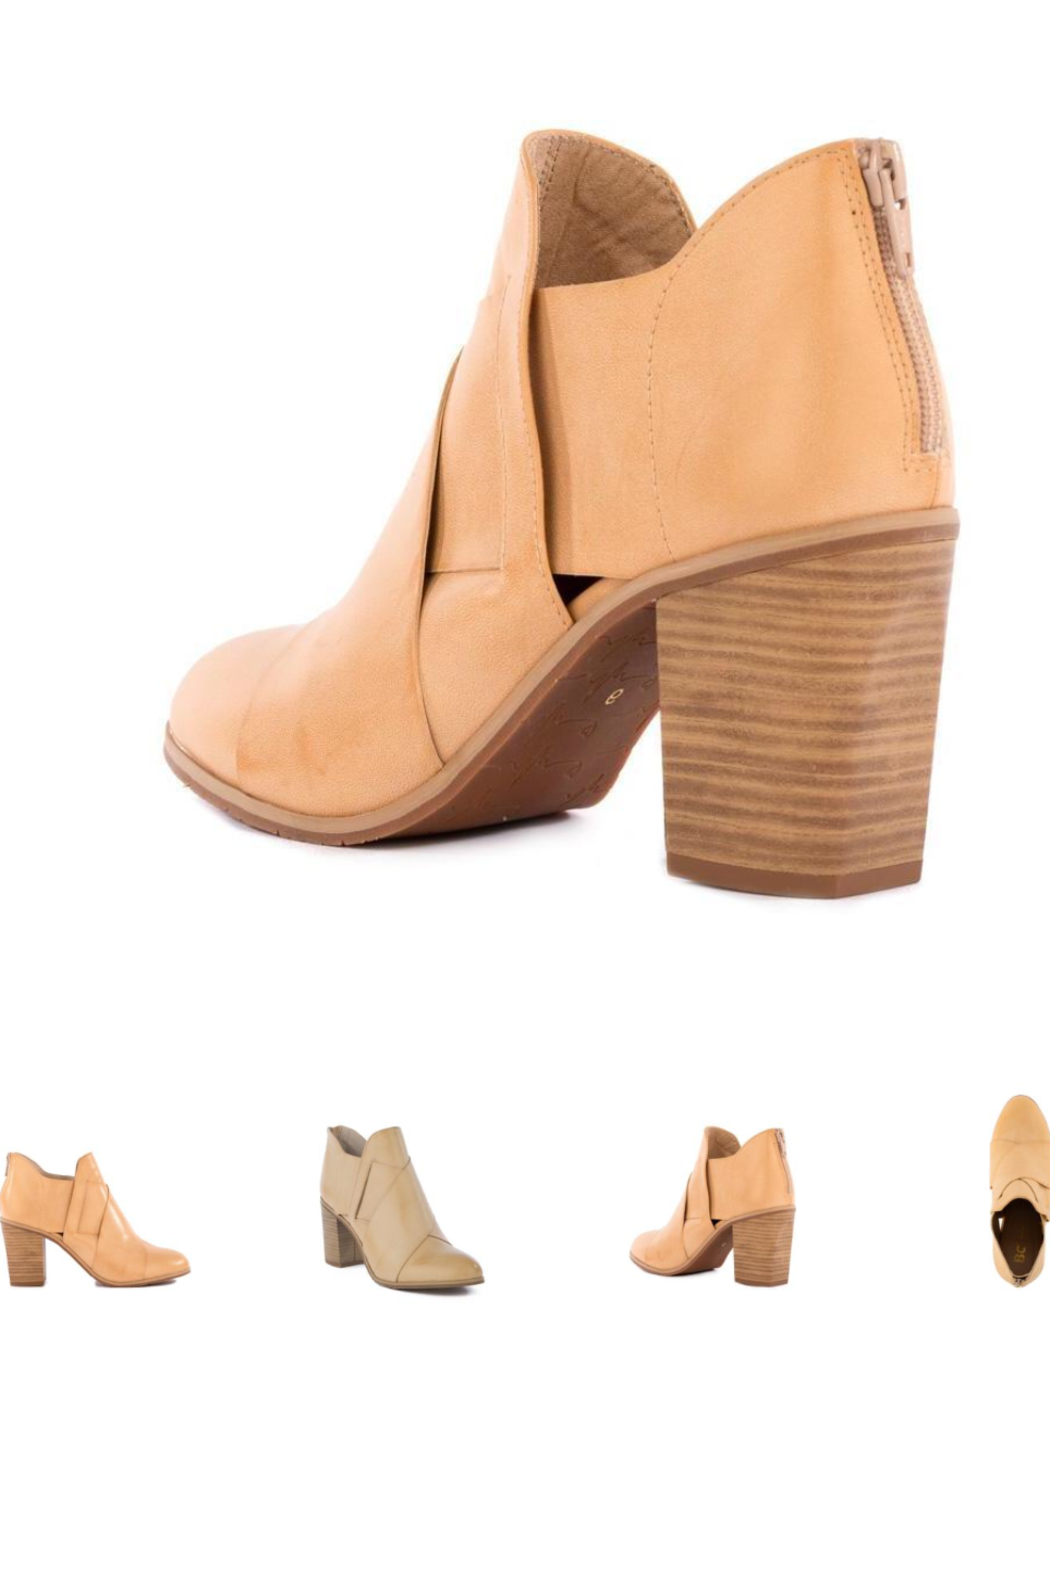 BC Footwear Azalea Natural Ankle Bootie - Front Full Image